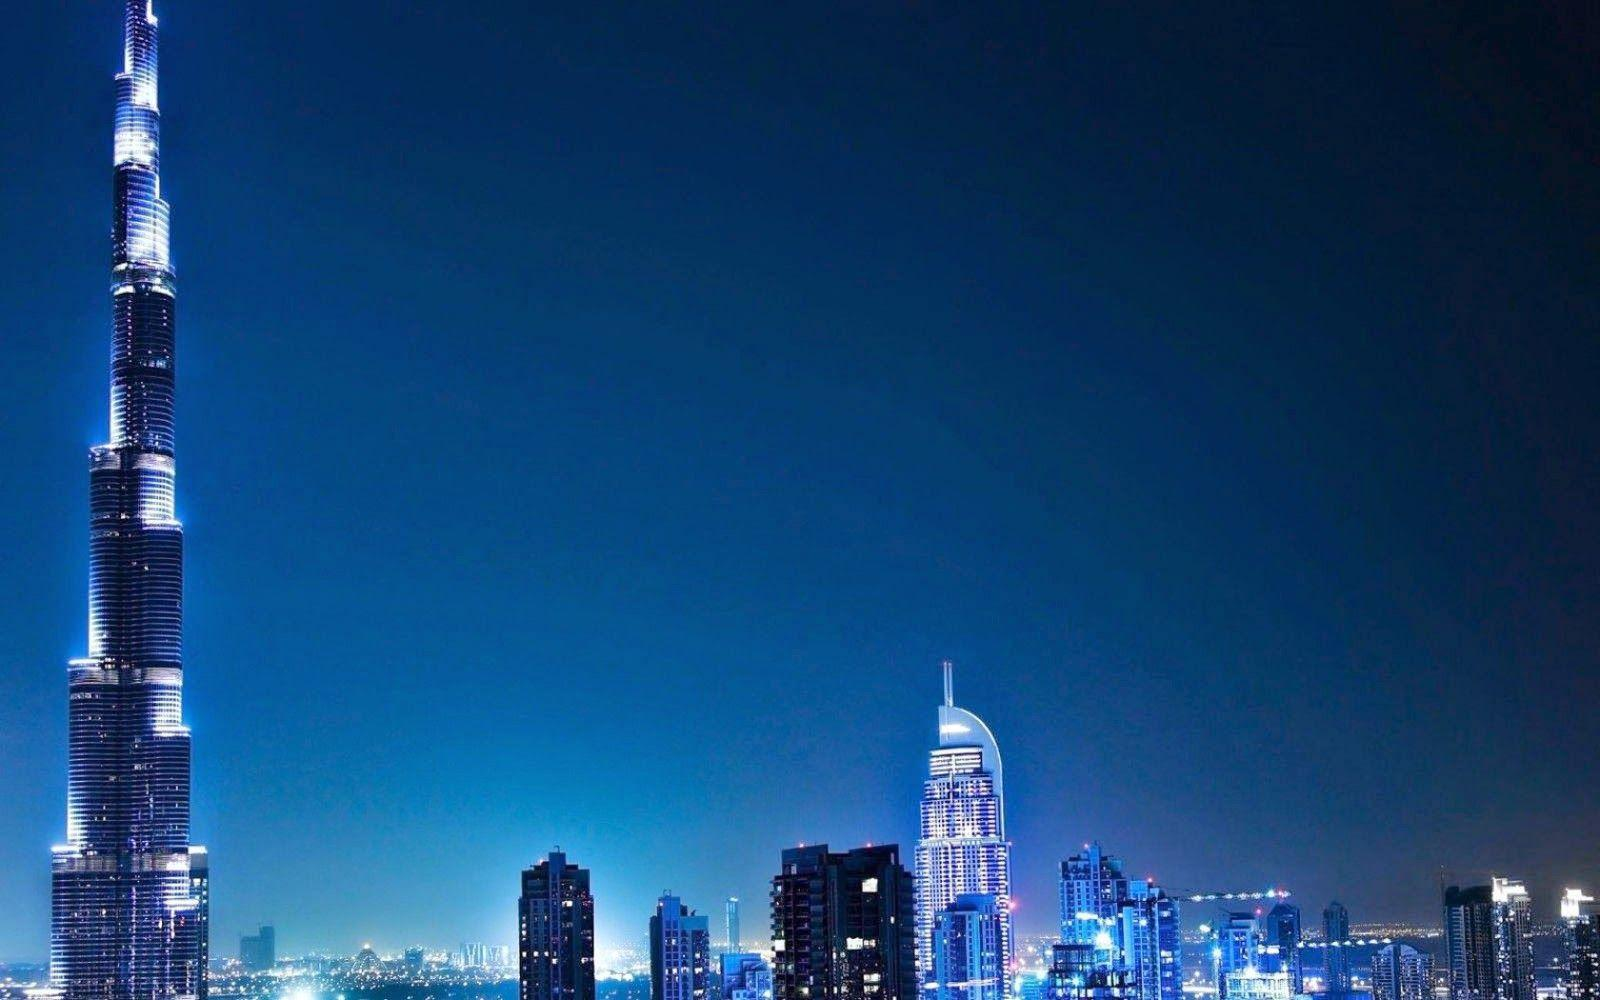 Burj Khalifa At Night wallpaper – wallpaper free download